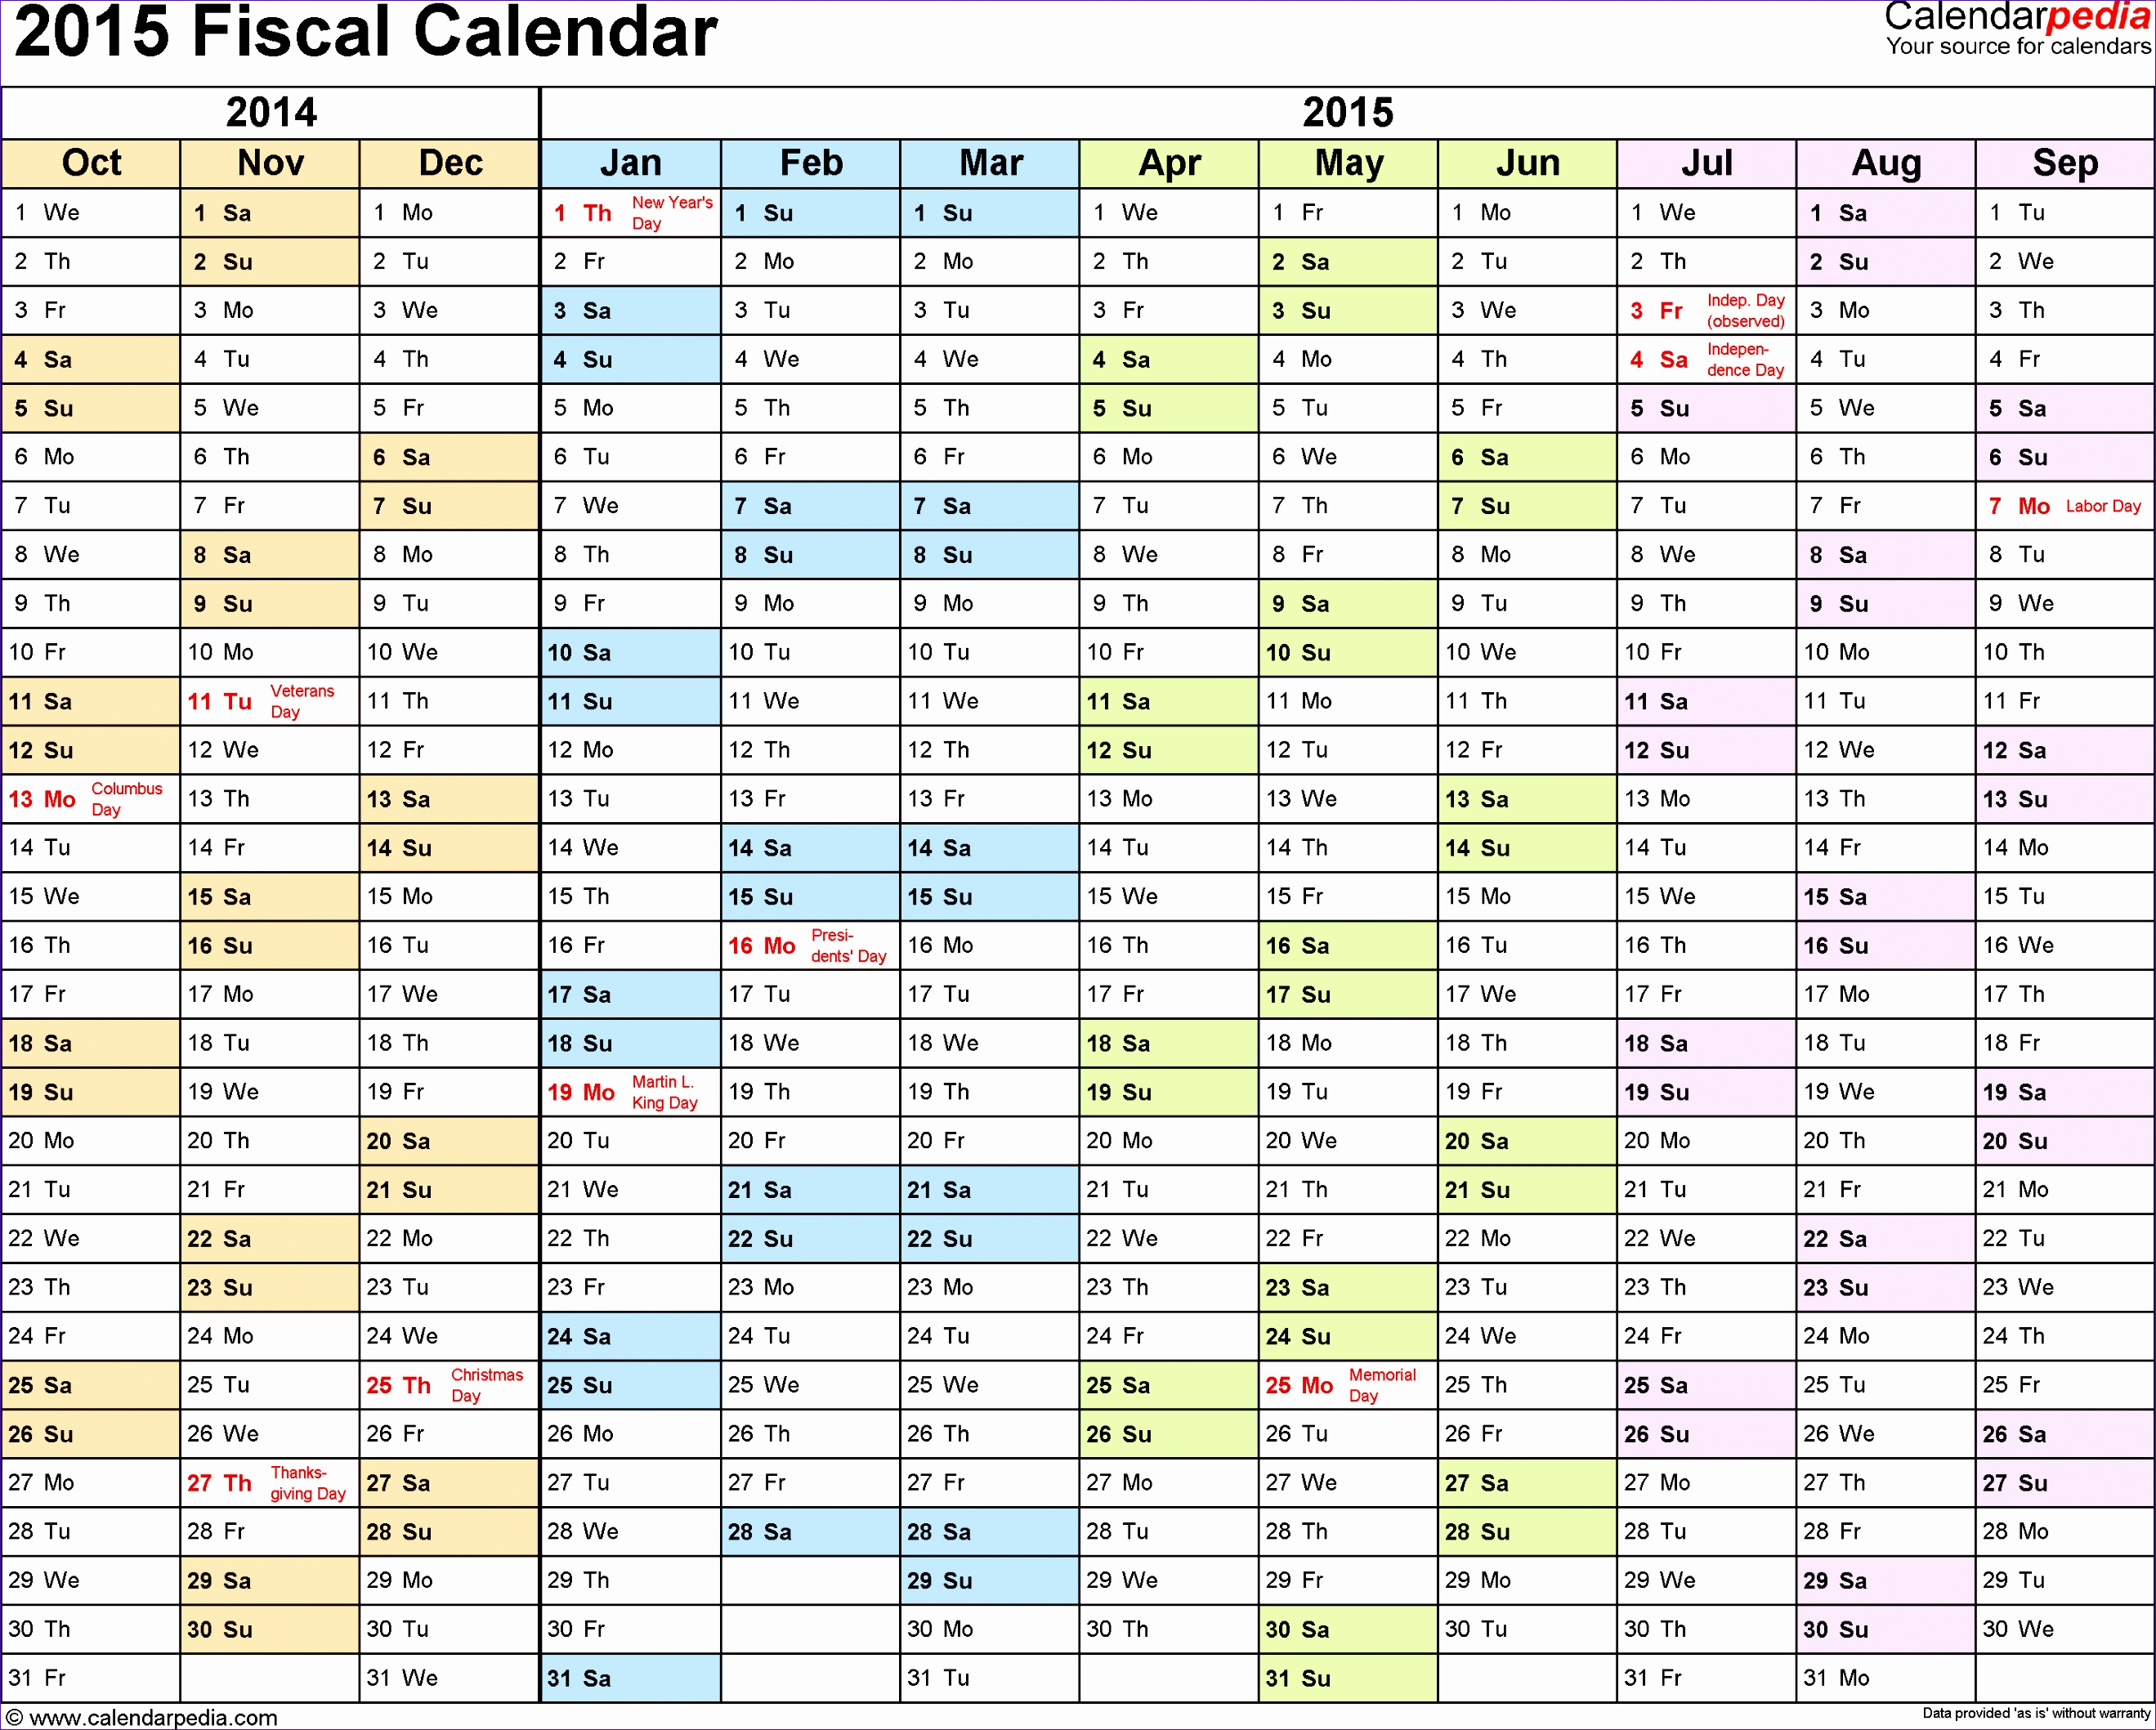 Monthly Budget Template Excel 2010 T7glb Lovely Fiscal Calendars 2015 as Free Printable Excel Templates